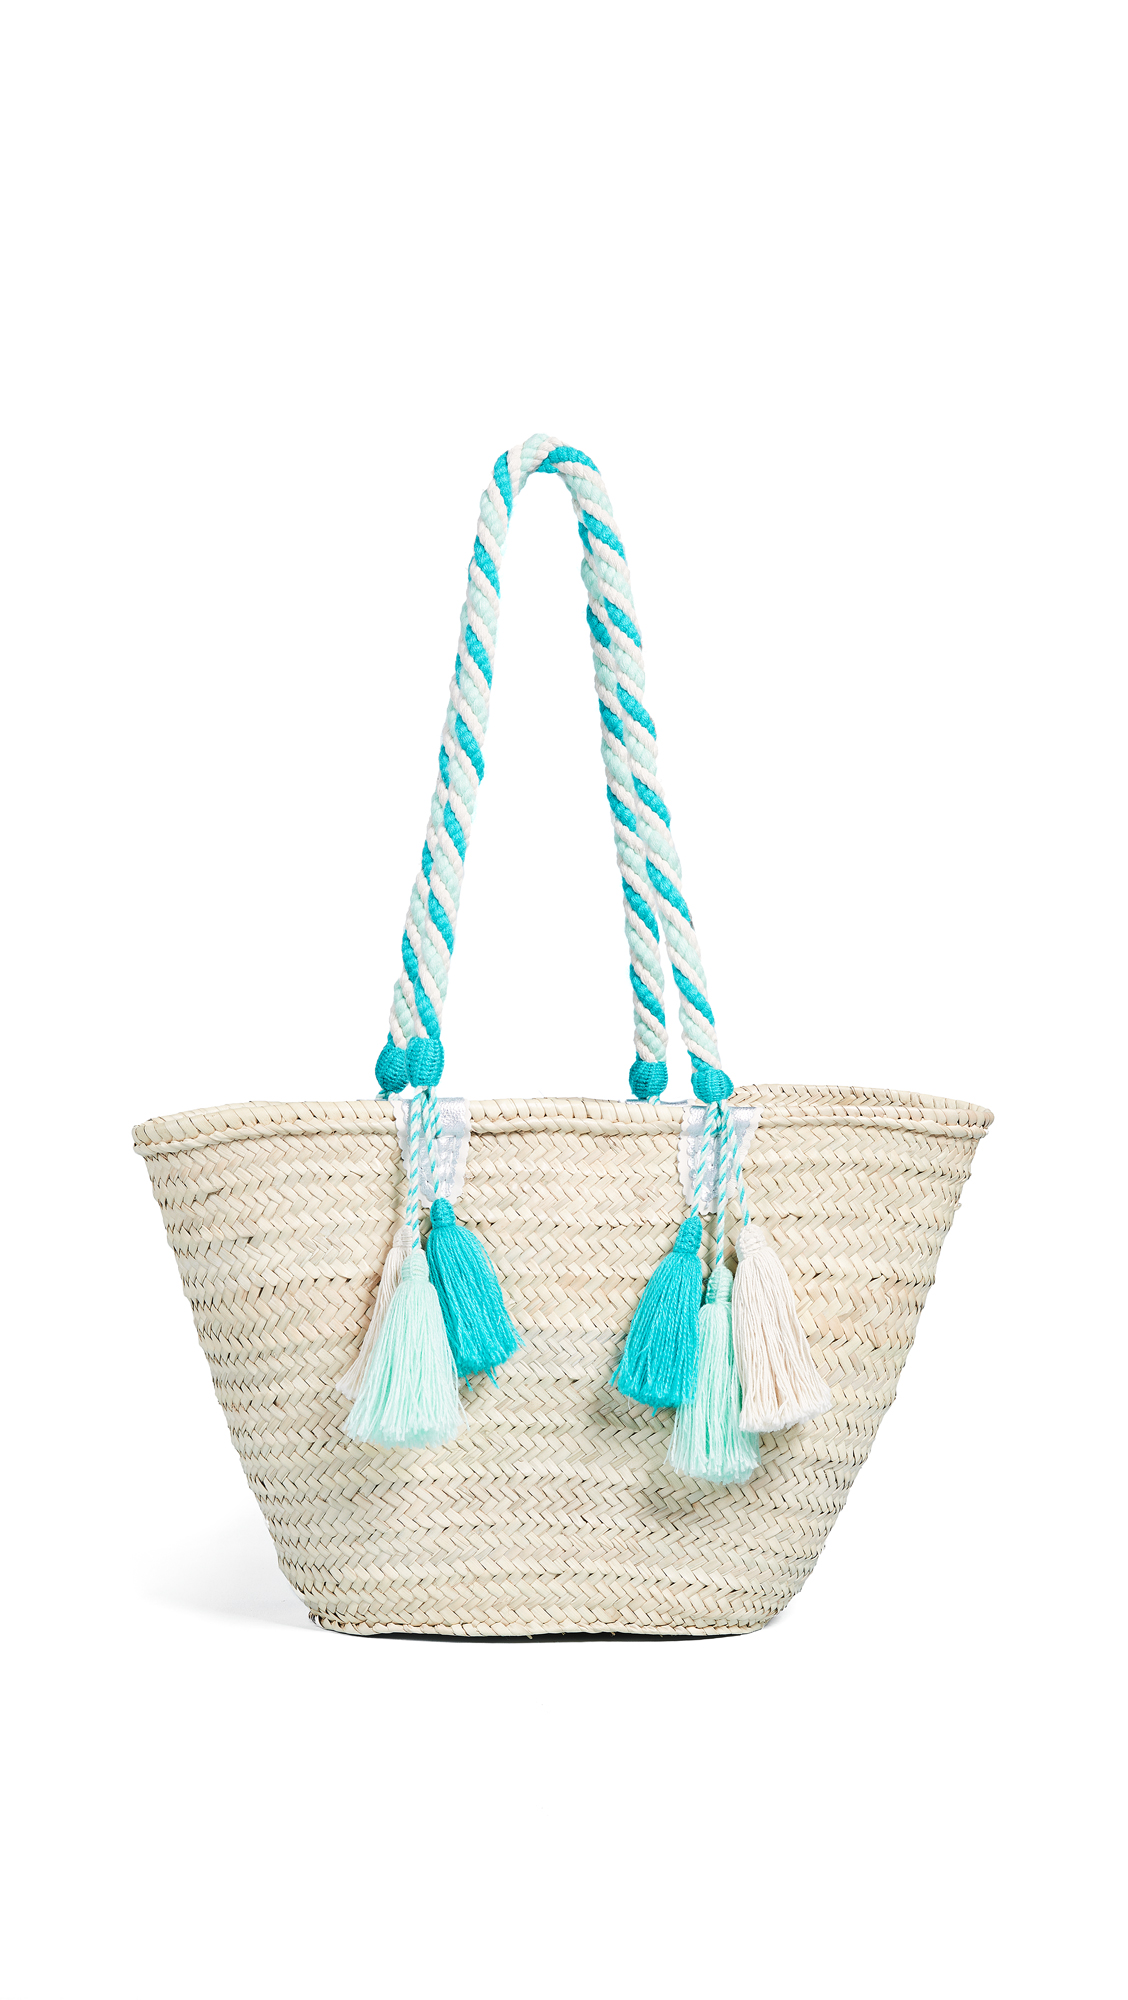 Giselle Lola Straw Tote